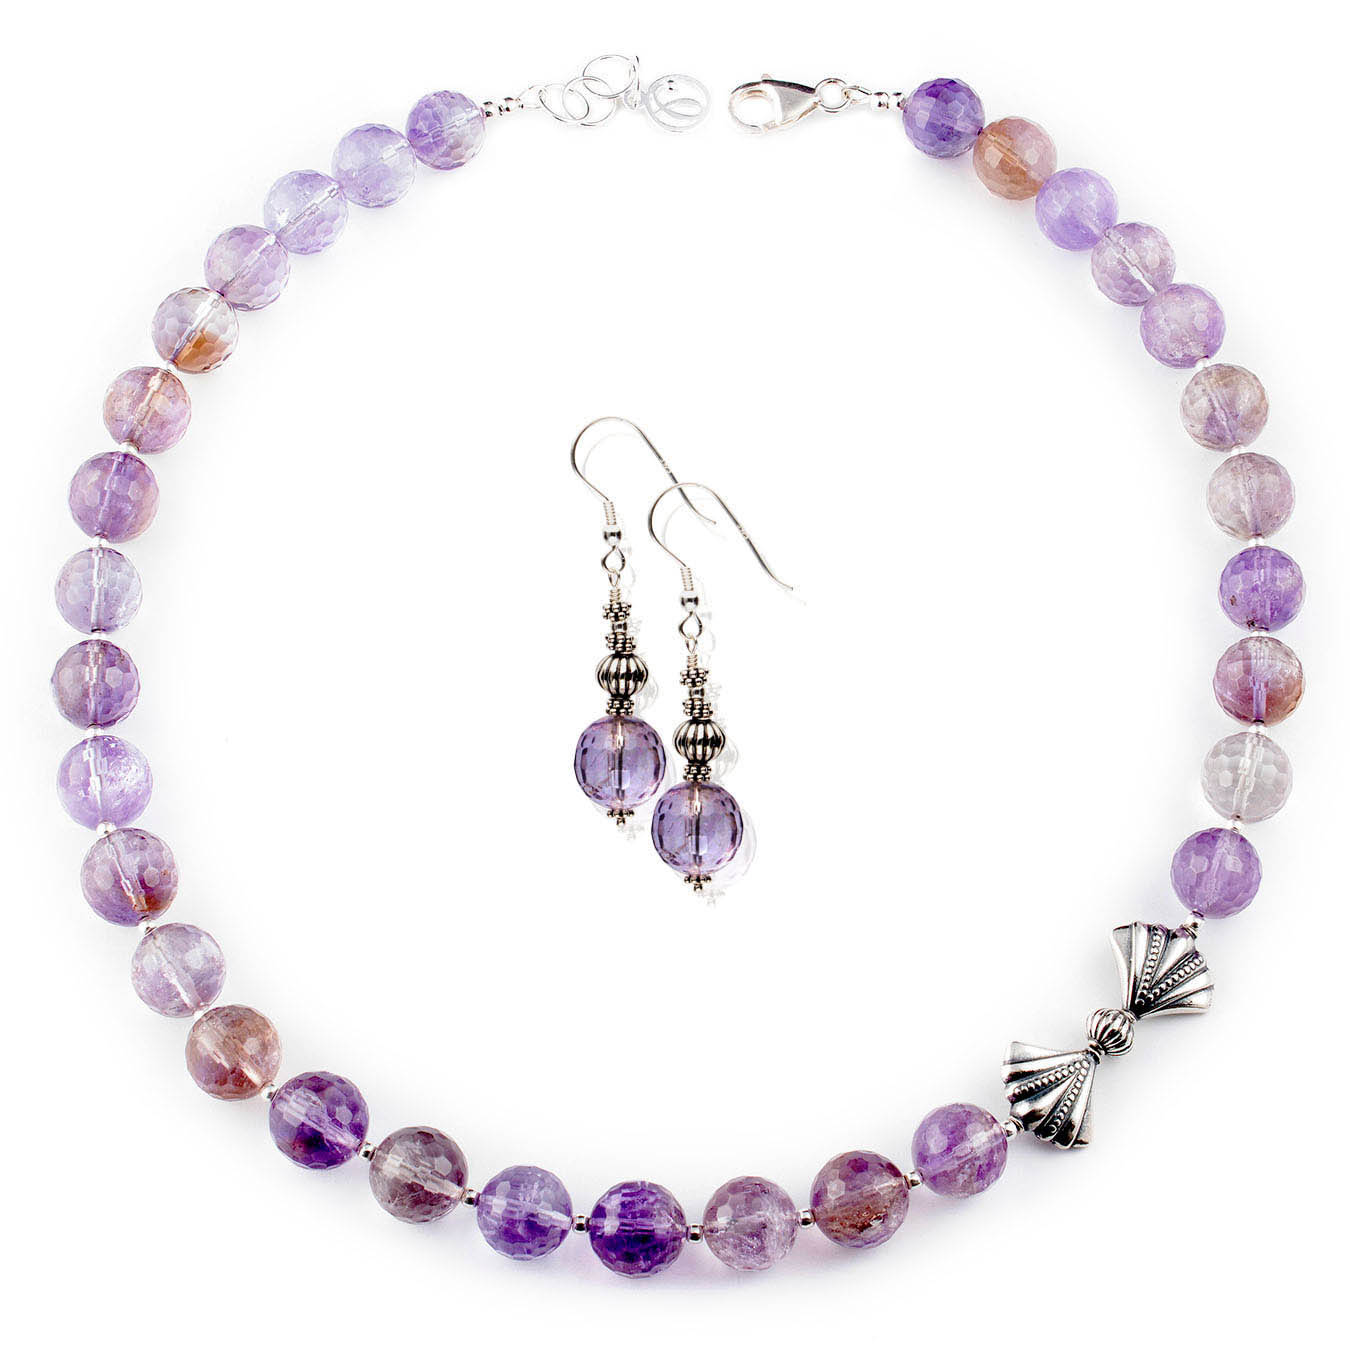 Artisan beaded jewelry necklace made with ametrine and bali silver